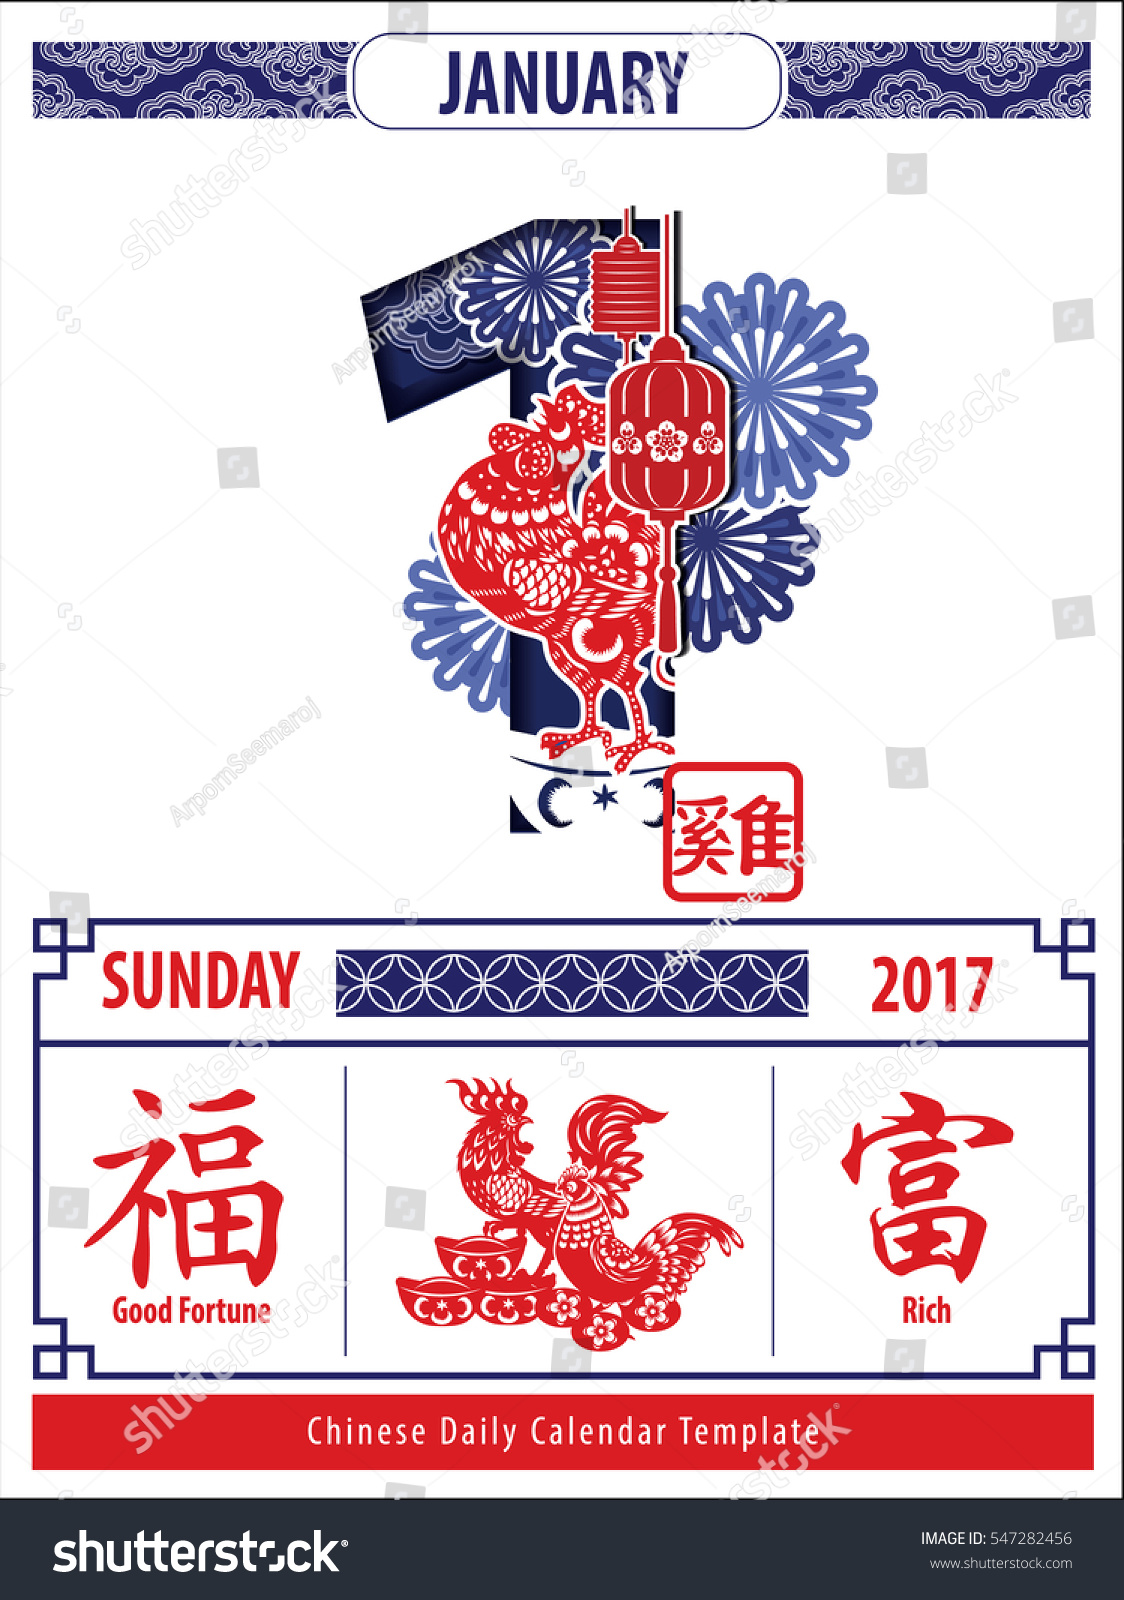 Vintage Chinese Calendar Template Rooster Chinese Stock Vector